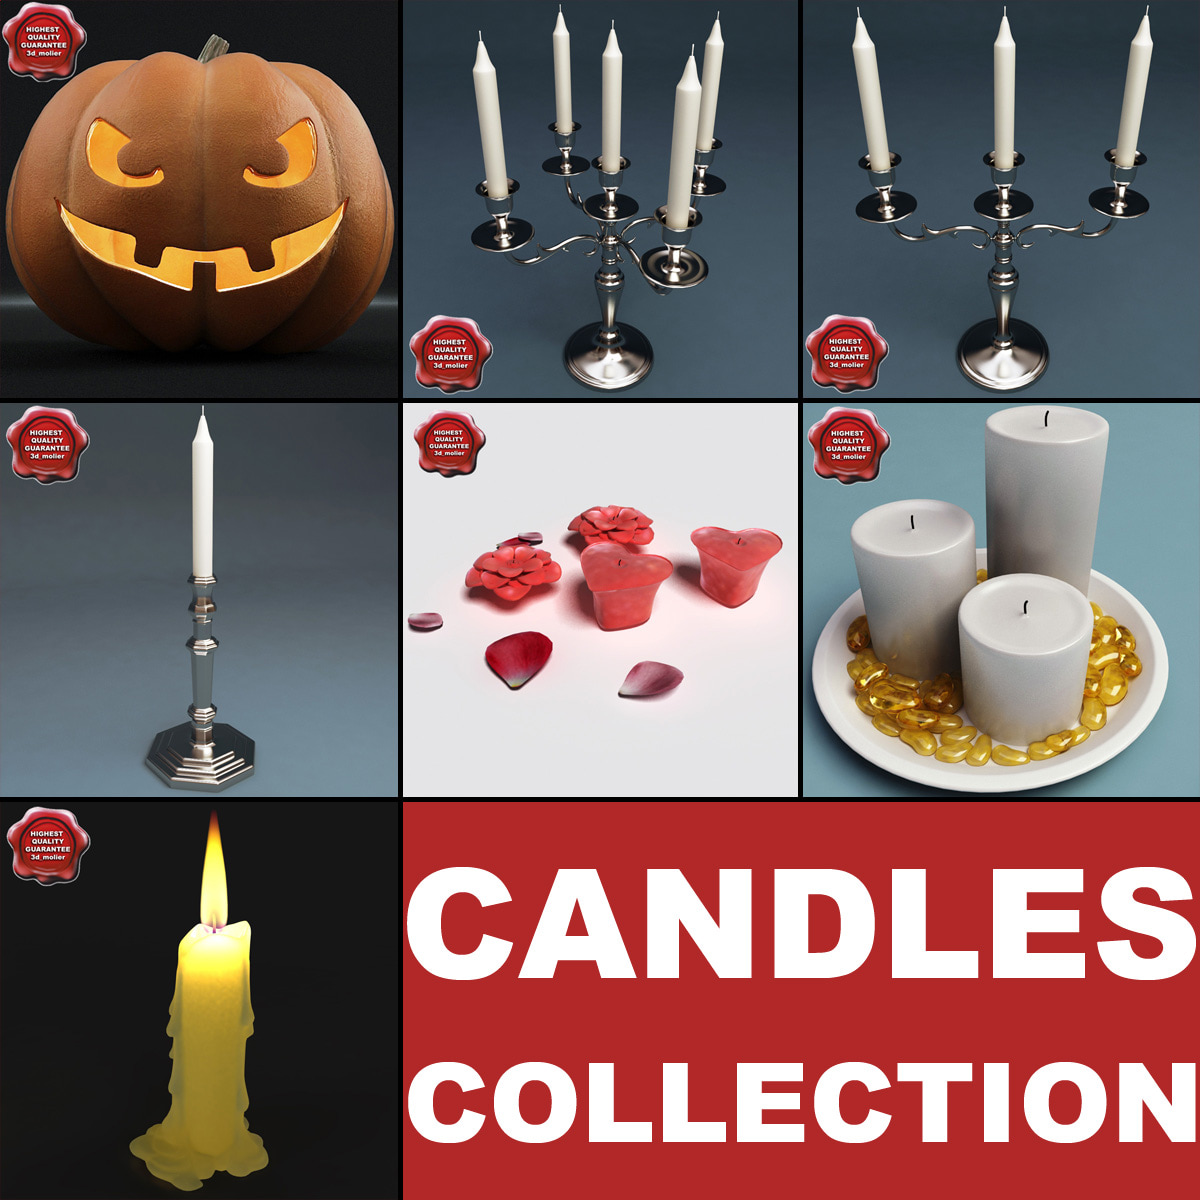 Candles_Collection_V2_00.jpg